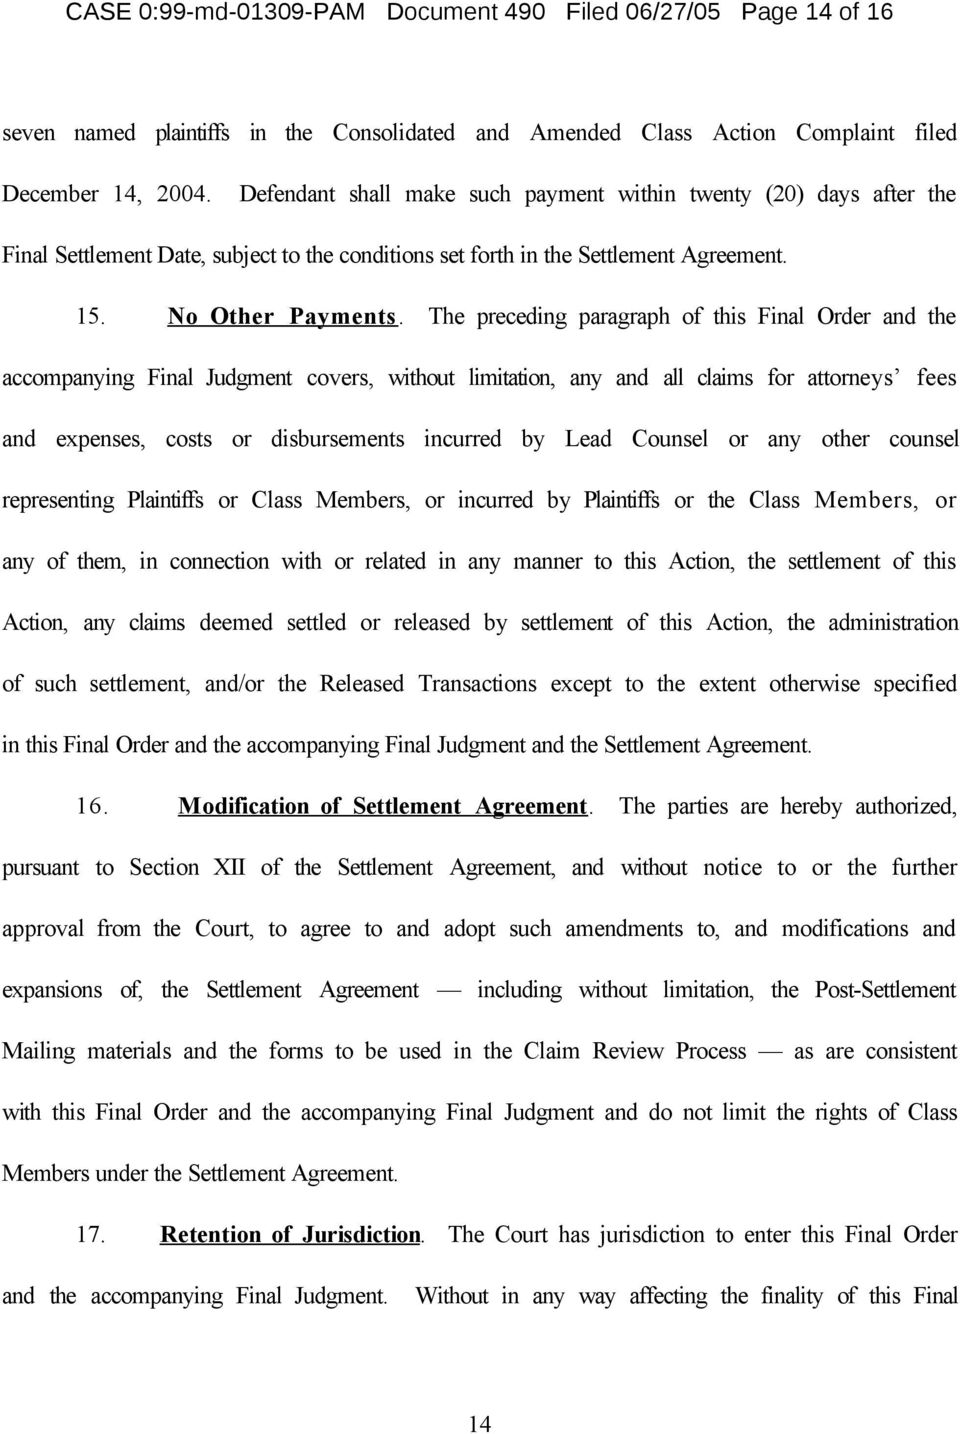 The preceding paragraph of this Final Order and the accompanying Final Judgment covers, without limitation, any and all claims for attorneys fees and expenses, costs or disbursements incurred by Lead